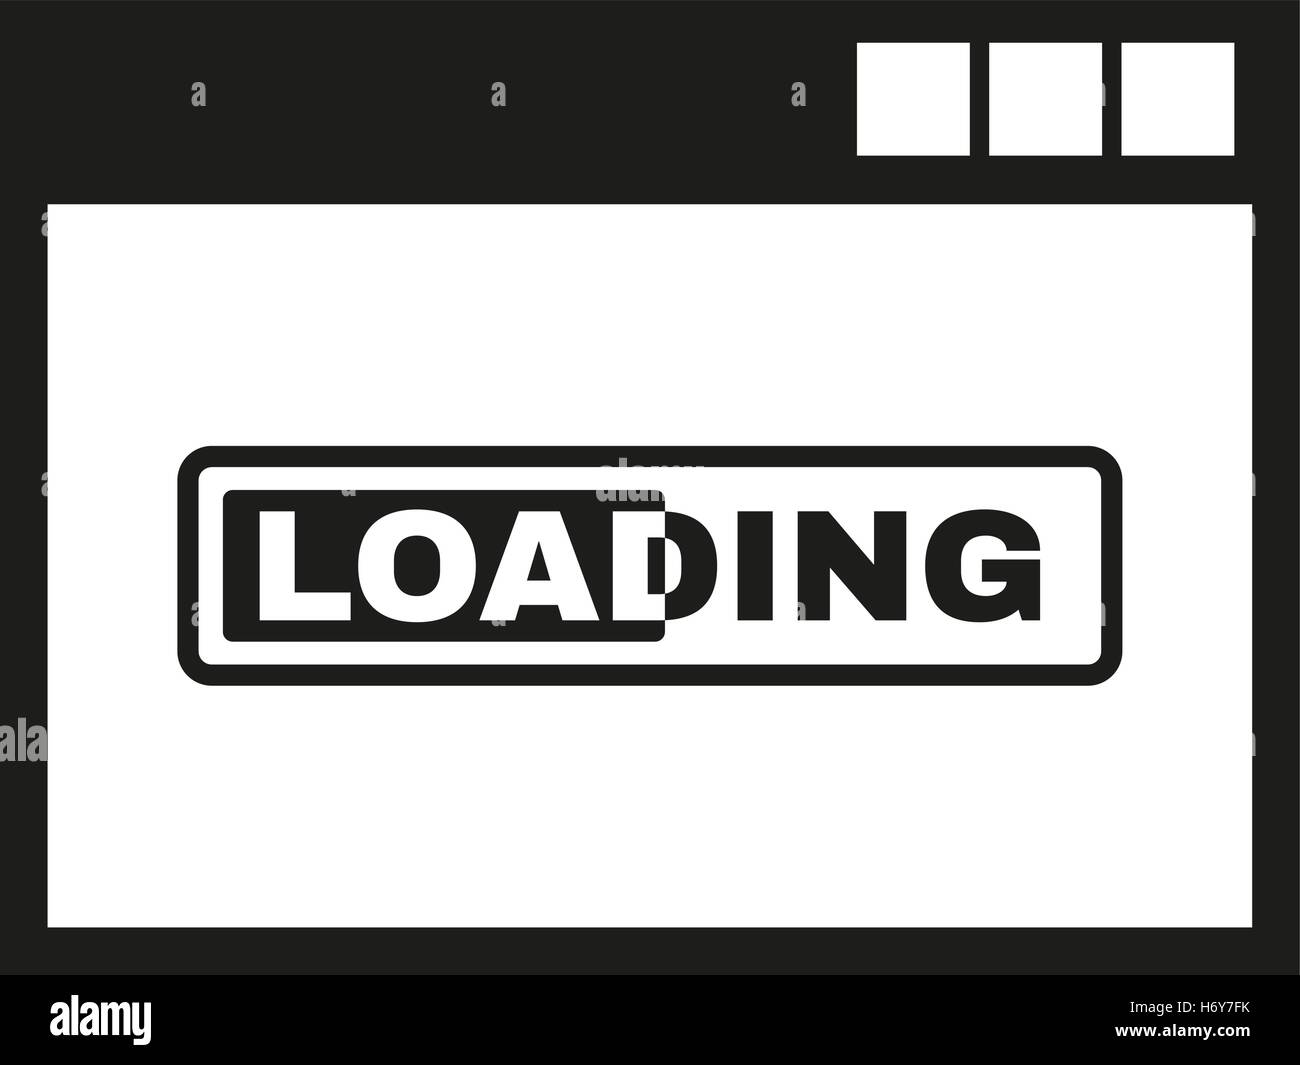 Loading icon vector design loading symbol web graphic jpg ai loading icon vector design loading symbol web graphic jpg ai app logo object flat image sign eps art picture st biocorpaavc Image collections